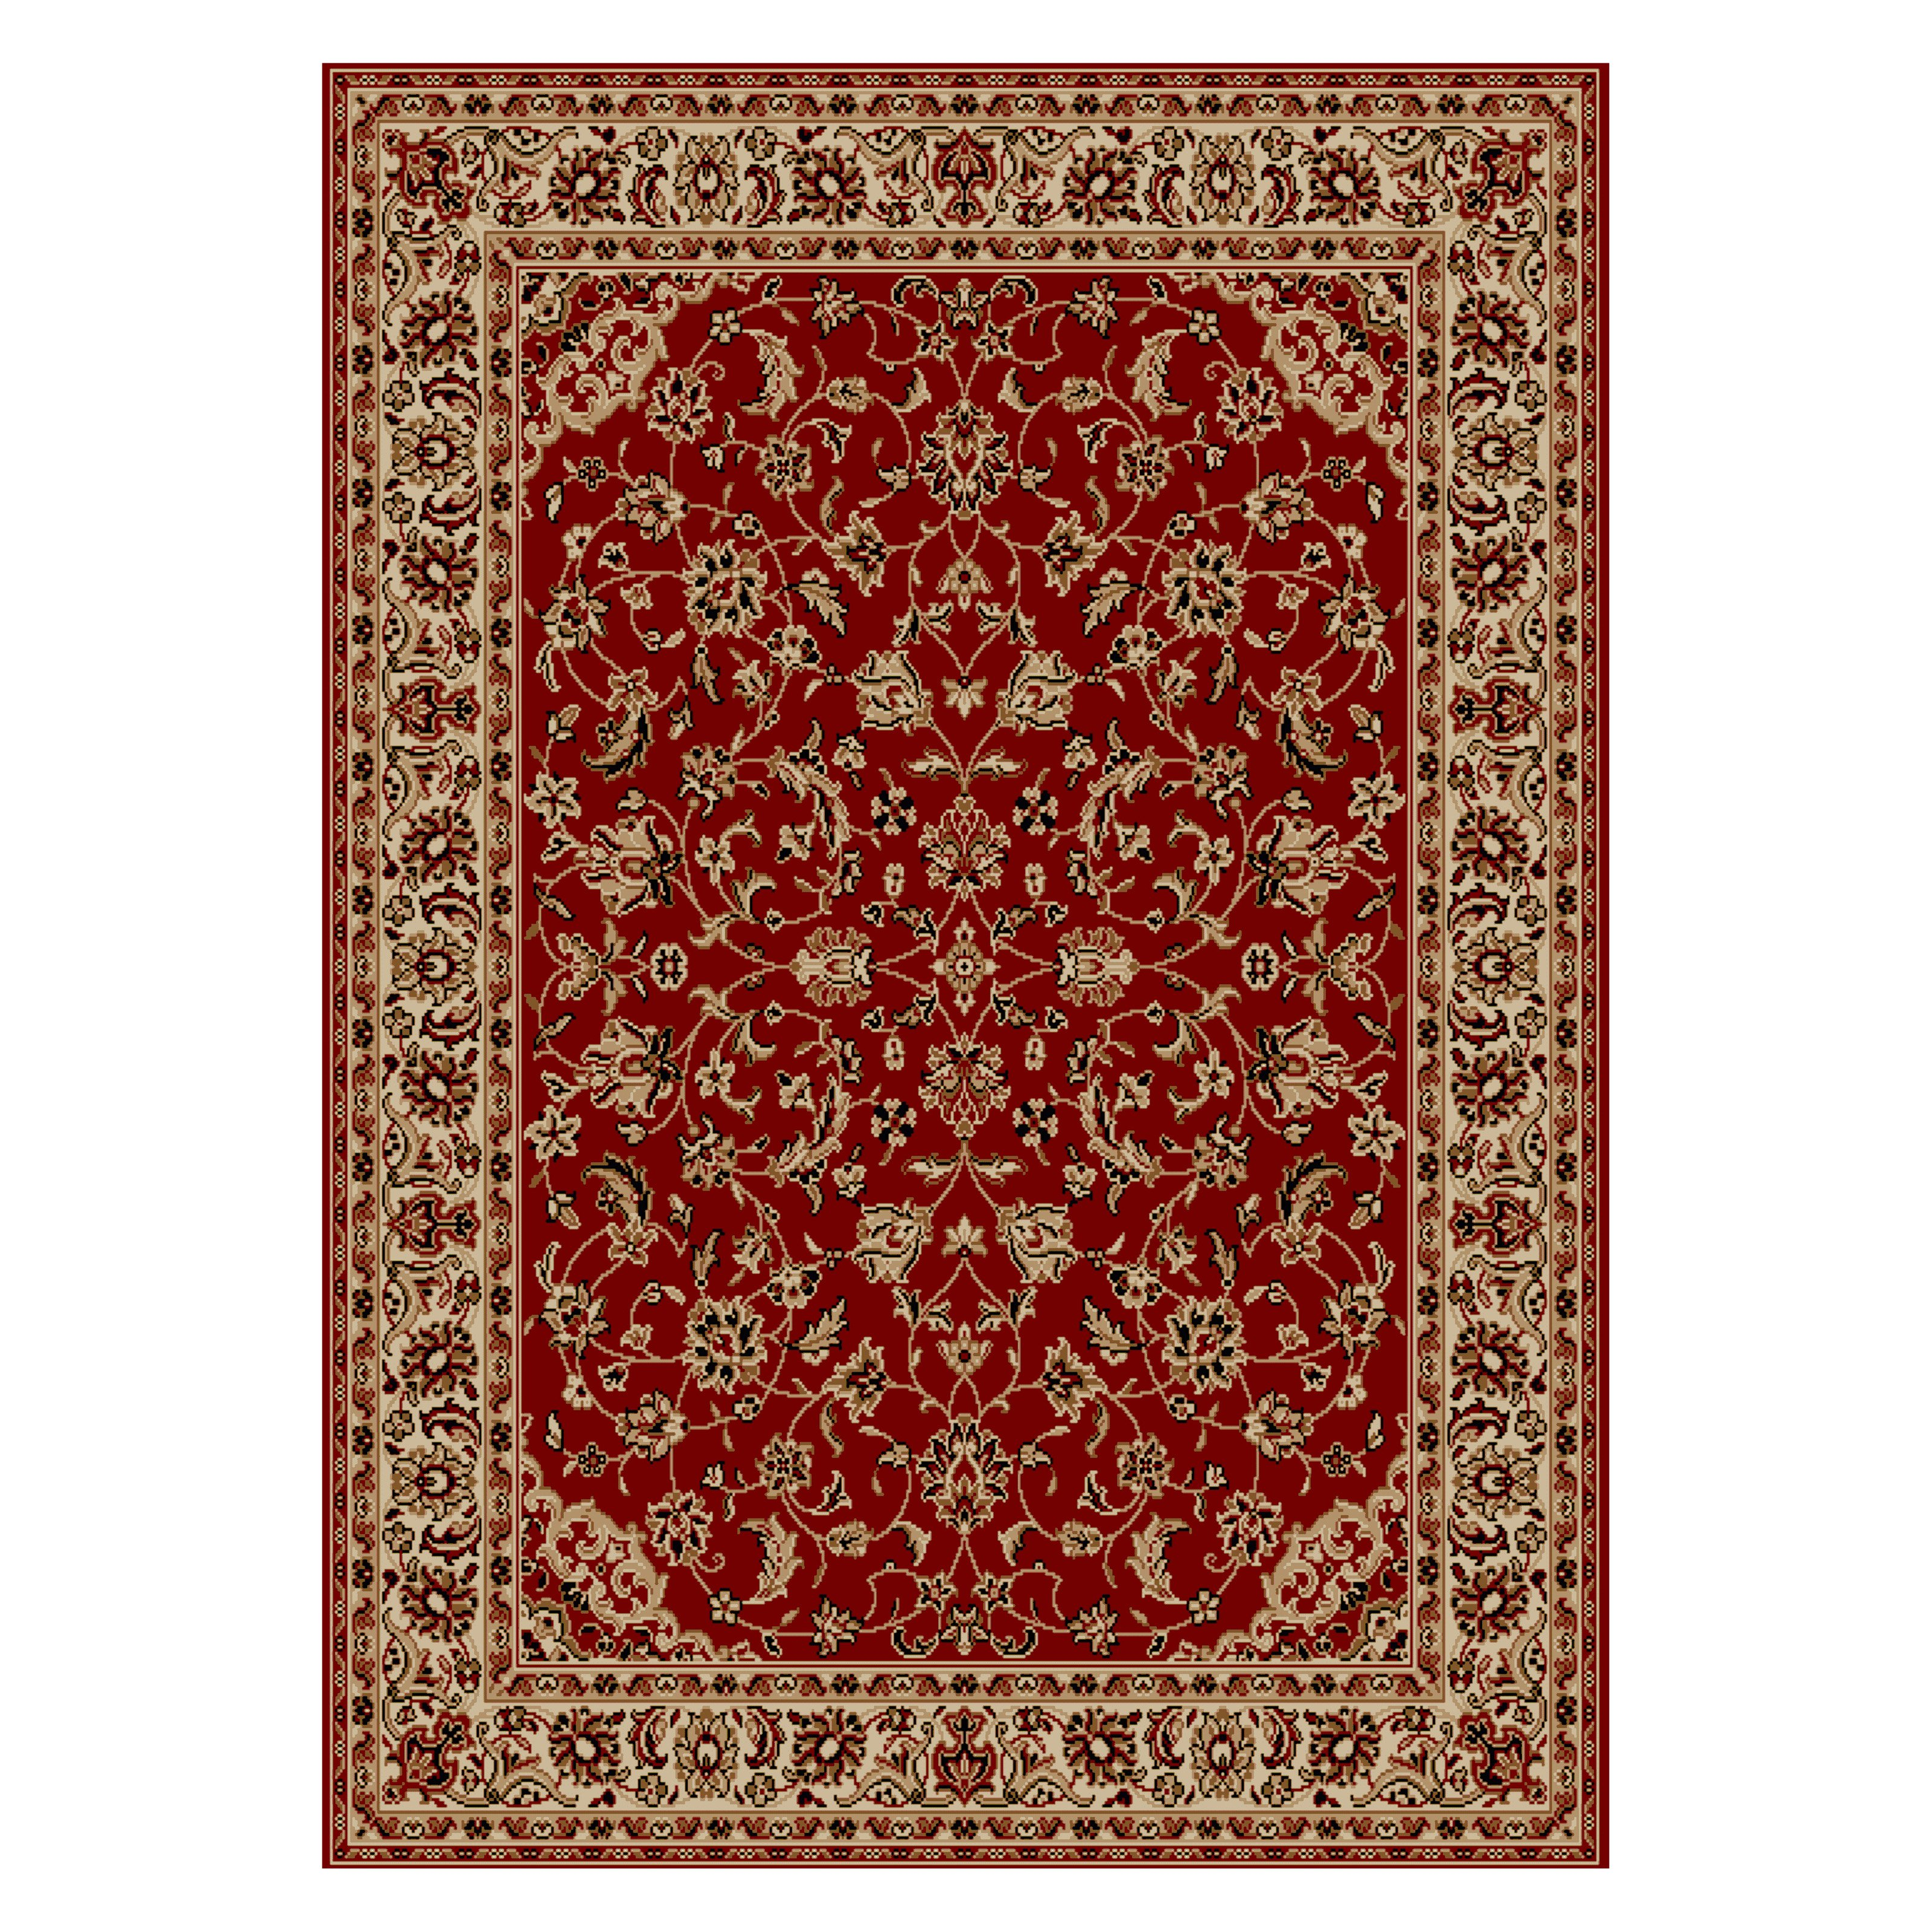 Radici USA Como 1833 Area Rug - Red